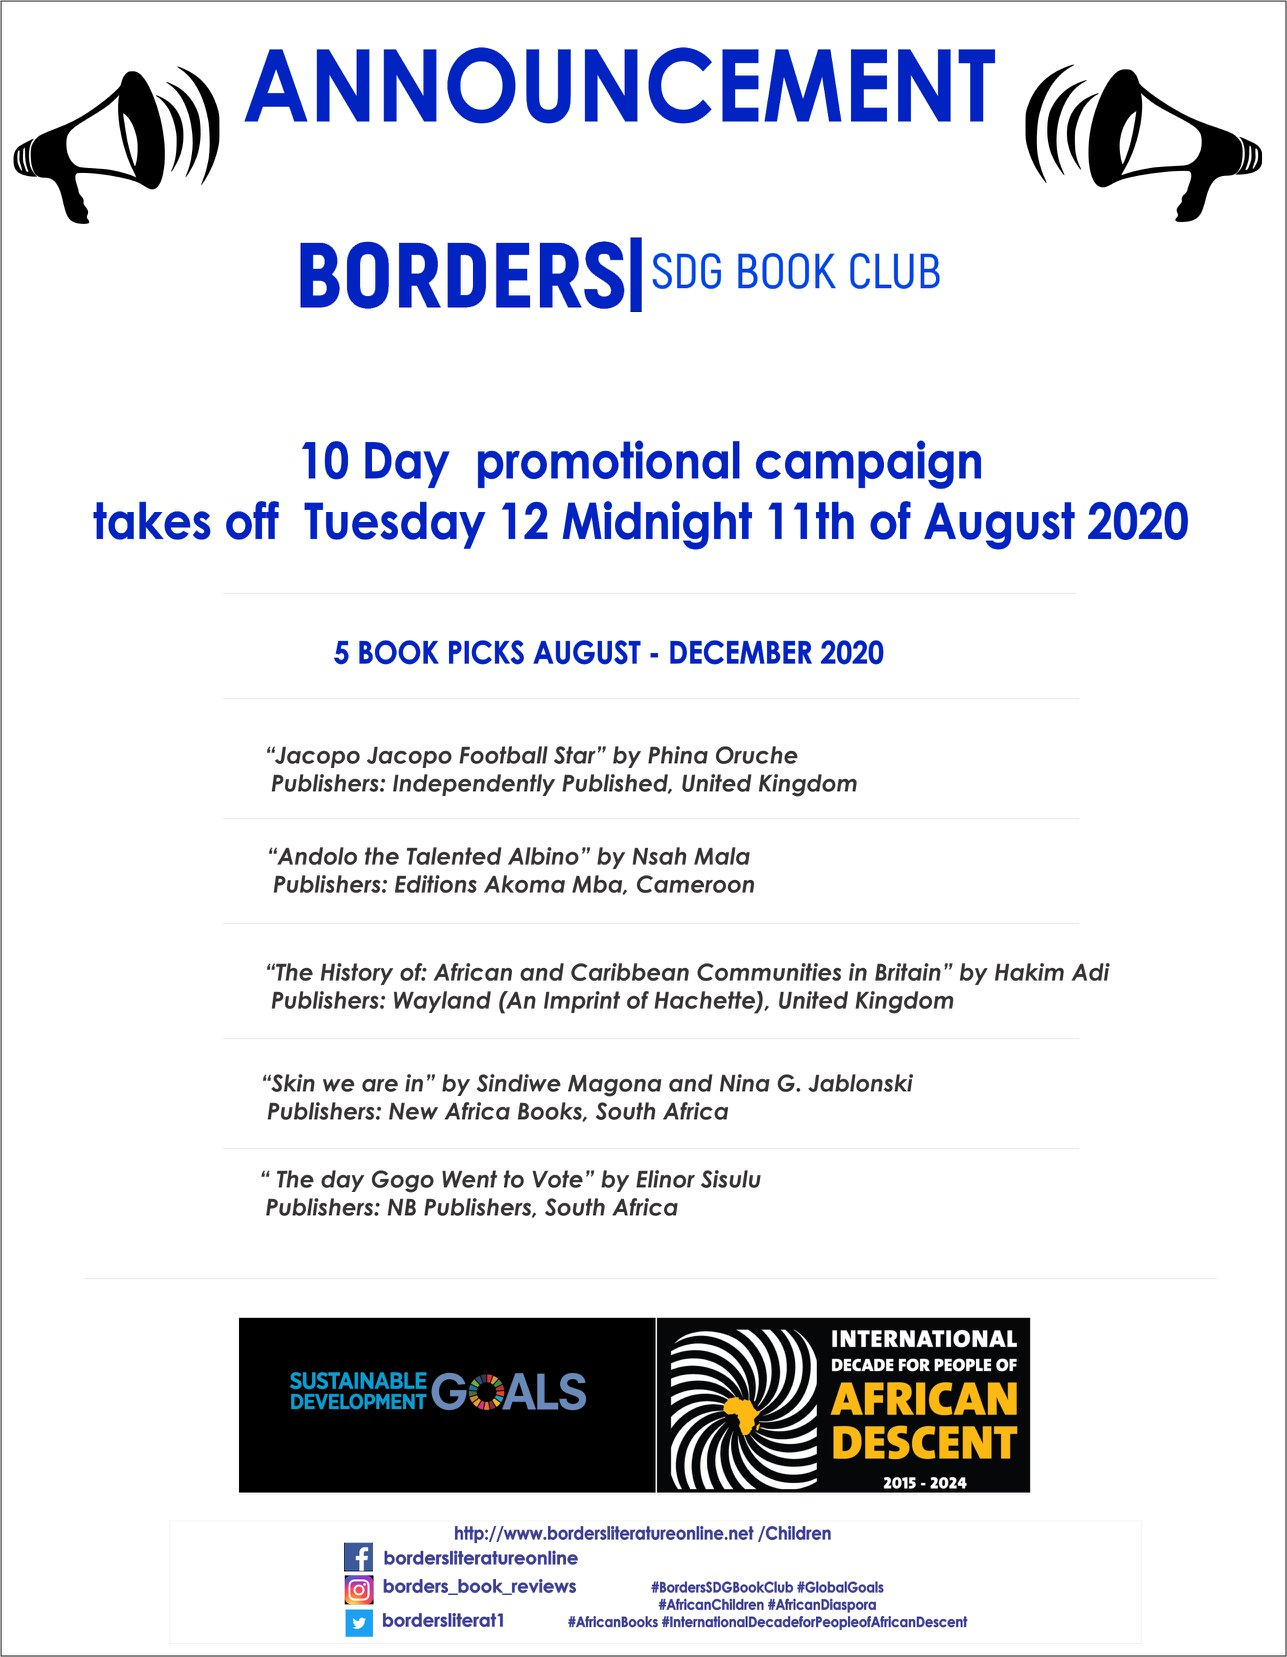 Borders SDG Book Club 5 Inaugural Book Picks August